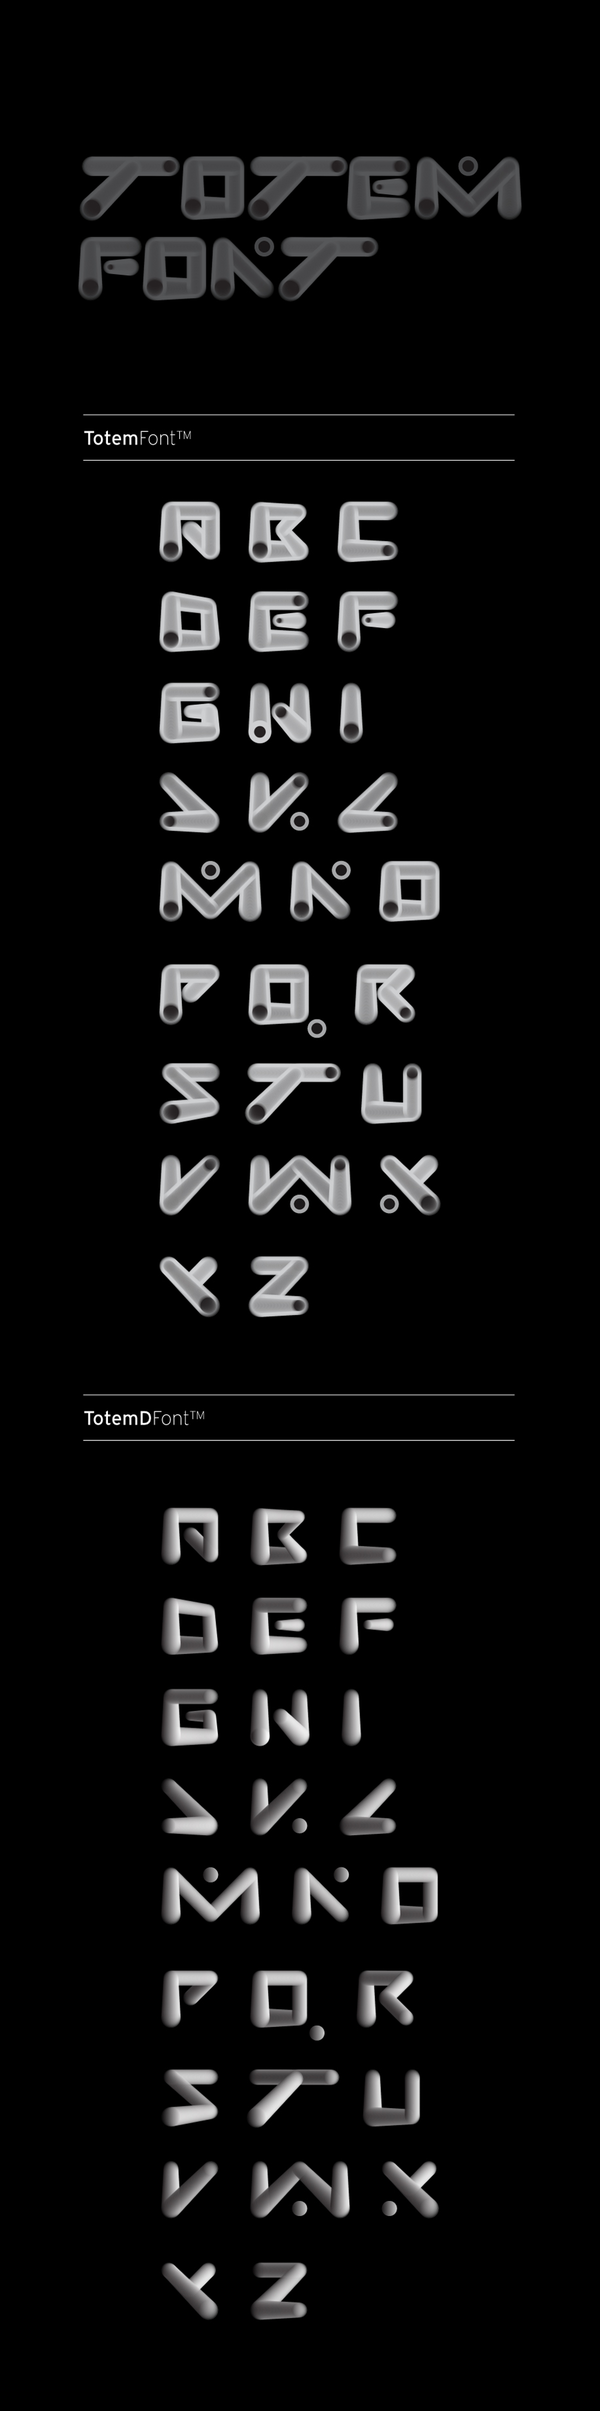 TOTEM_FONT by Haralampos Andreanidis